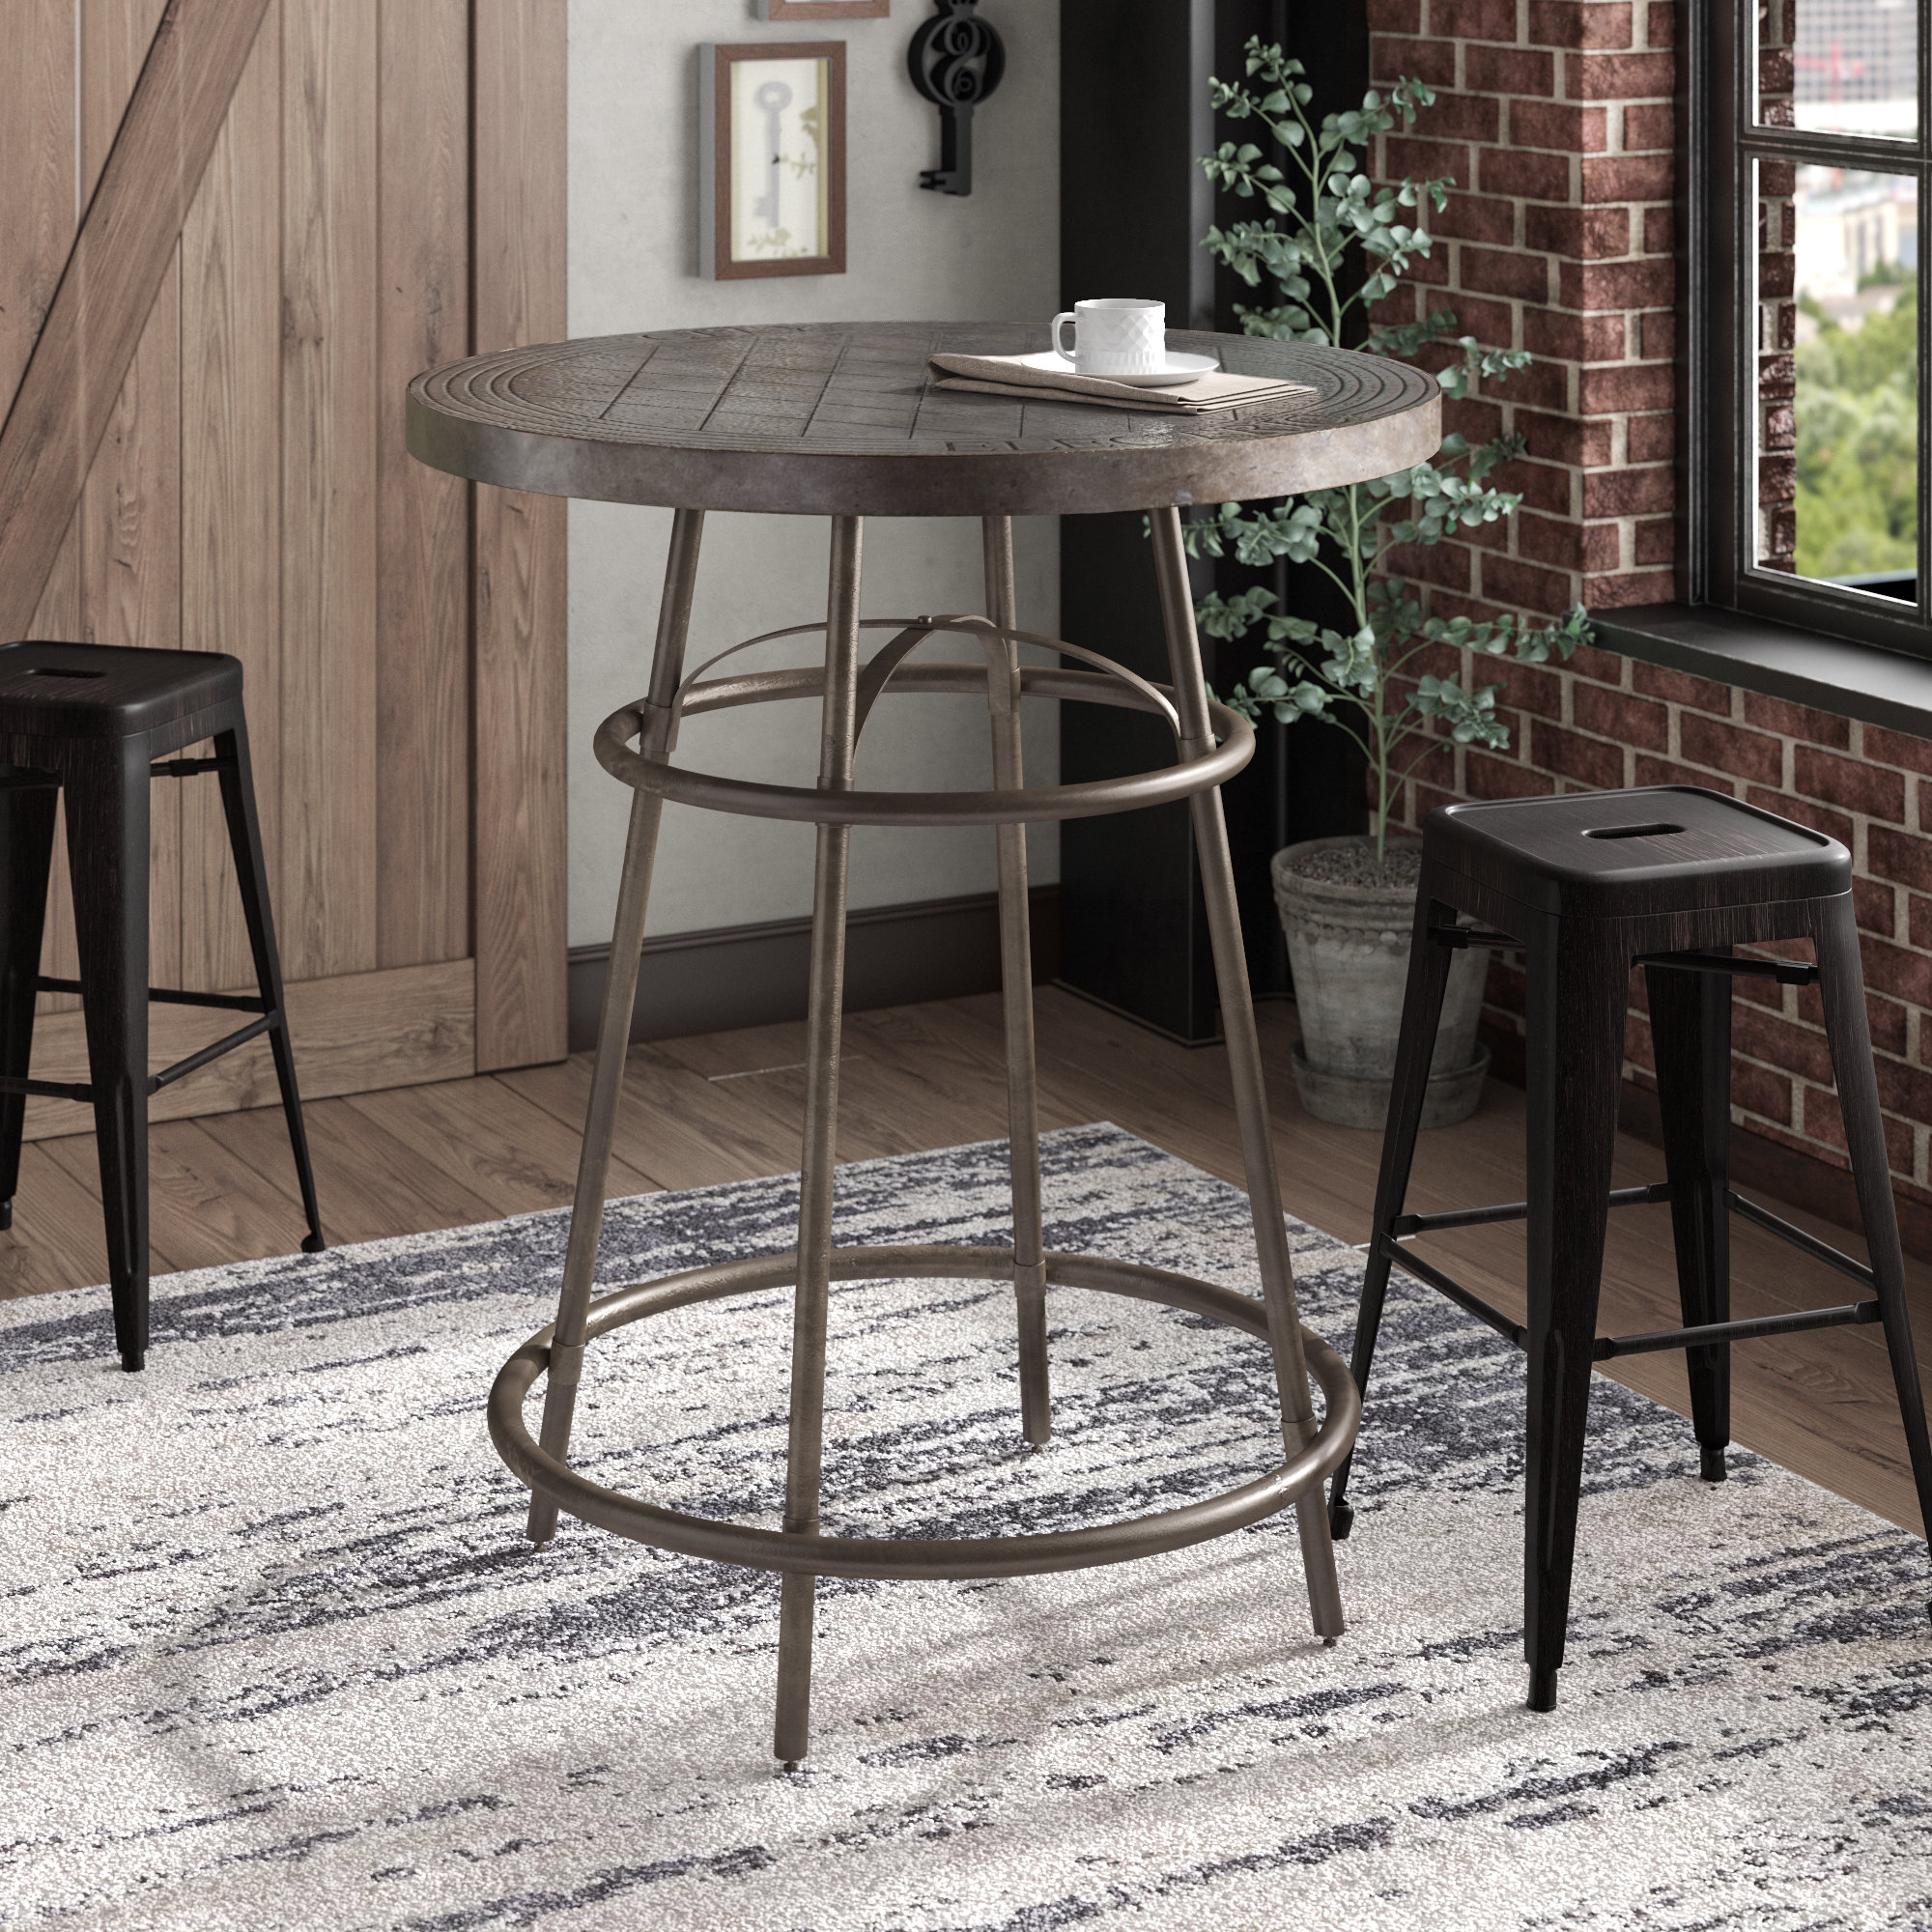 laurel foundry modern farmhouse clarisse pub table reviews clarissa metal accent coffee styling chairs with champagne ice bucket black tiffany stained glass lamp placemat set